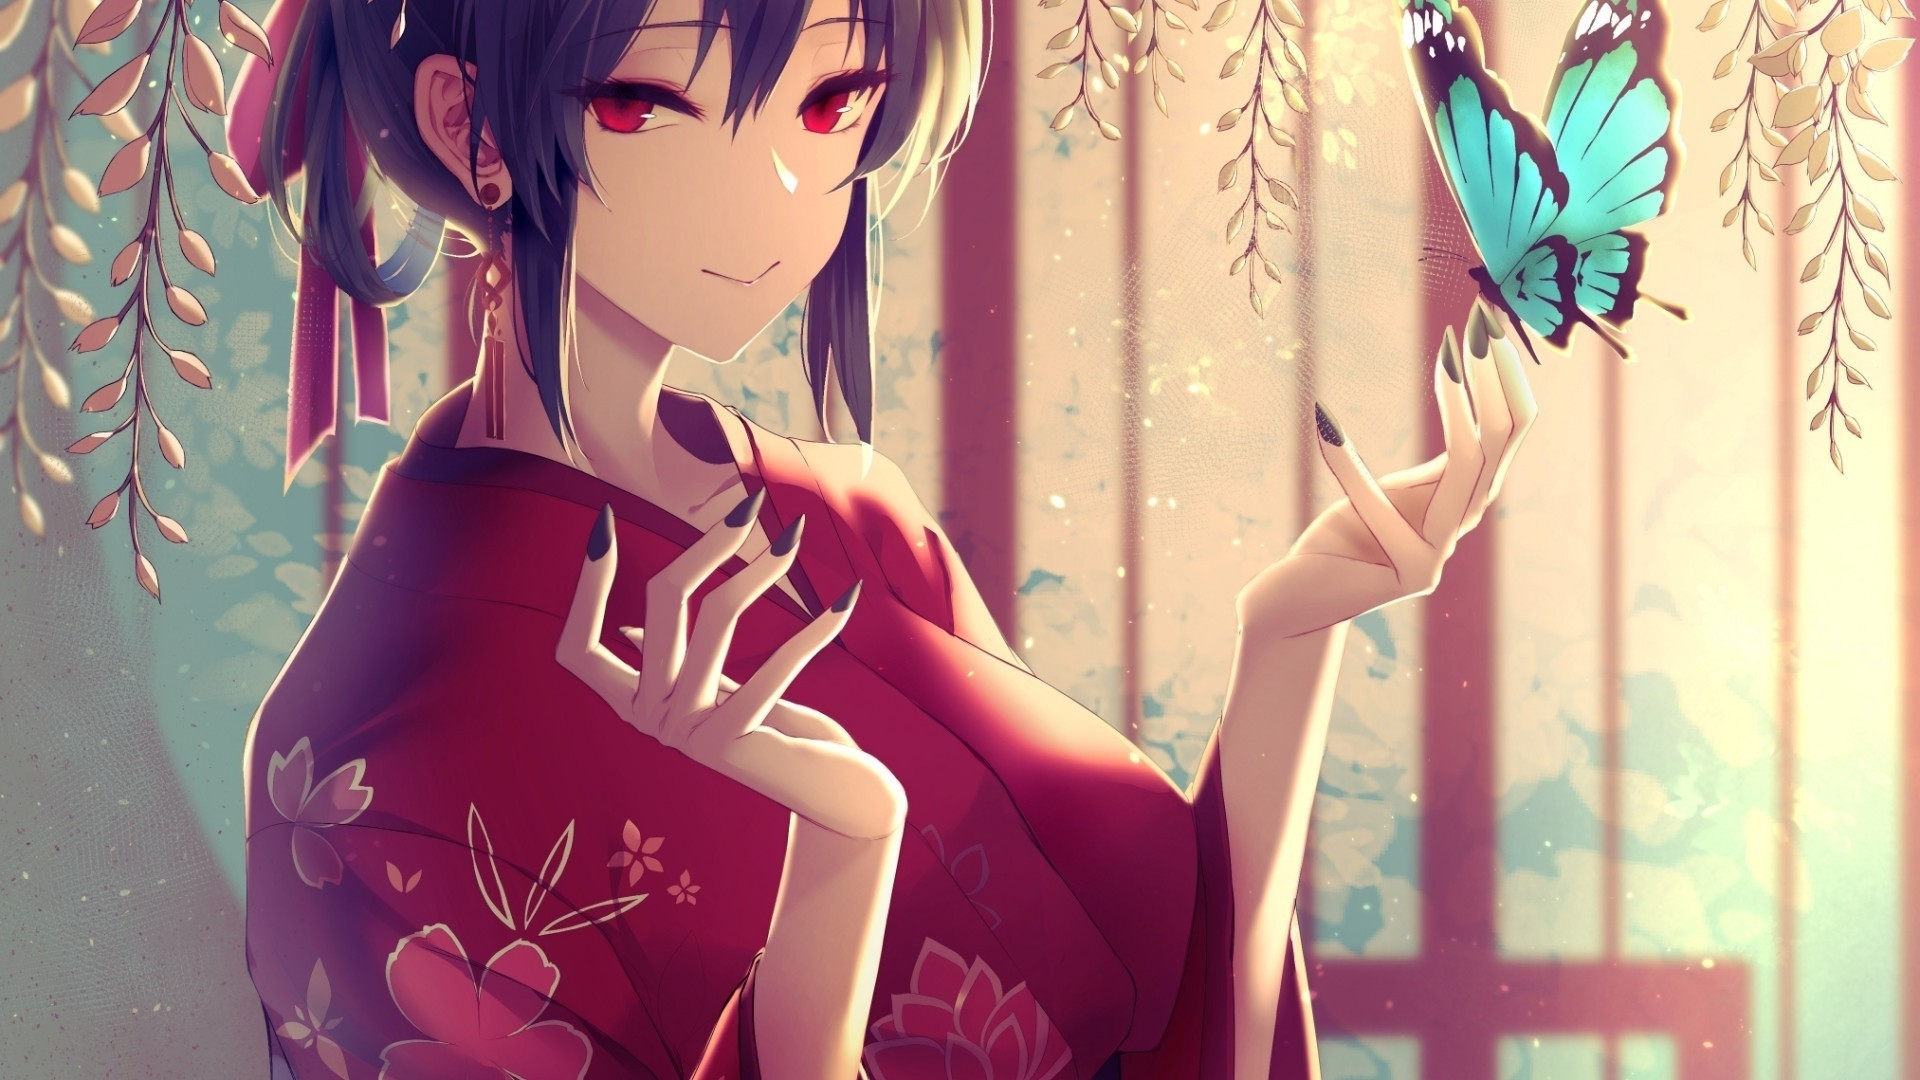 Anime Girl Short Hair Free Wallpaper and Background